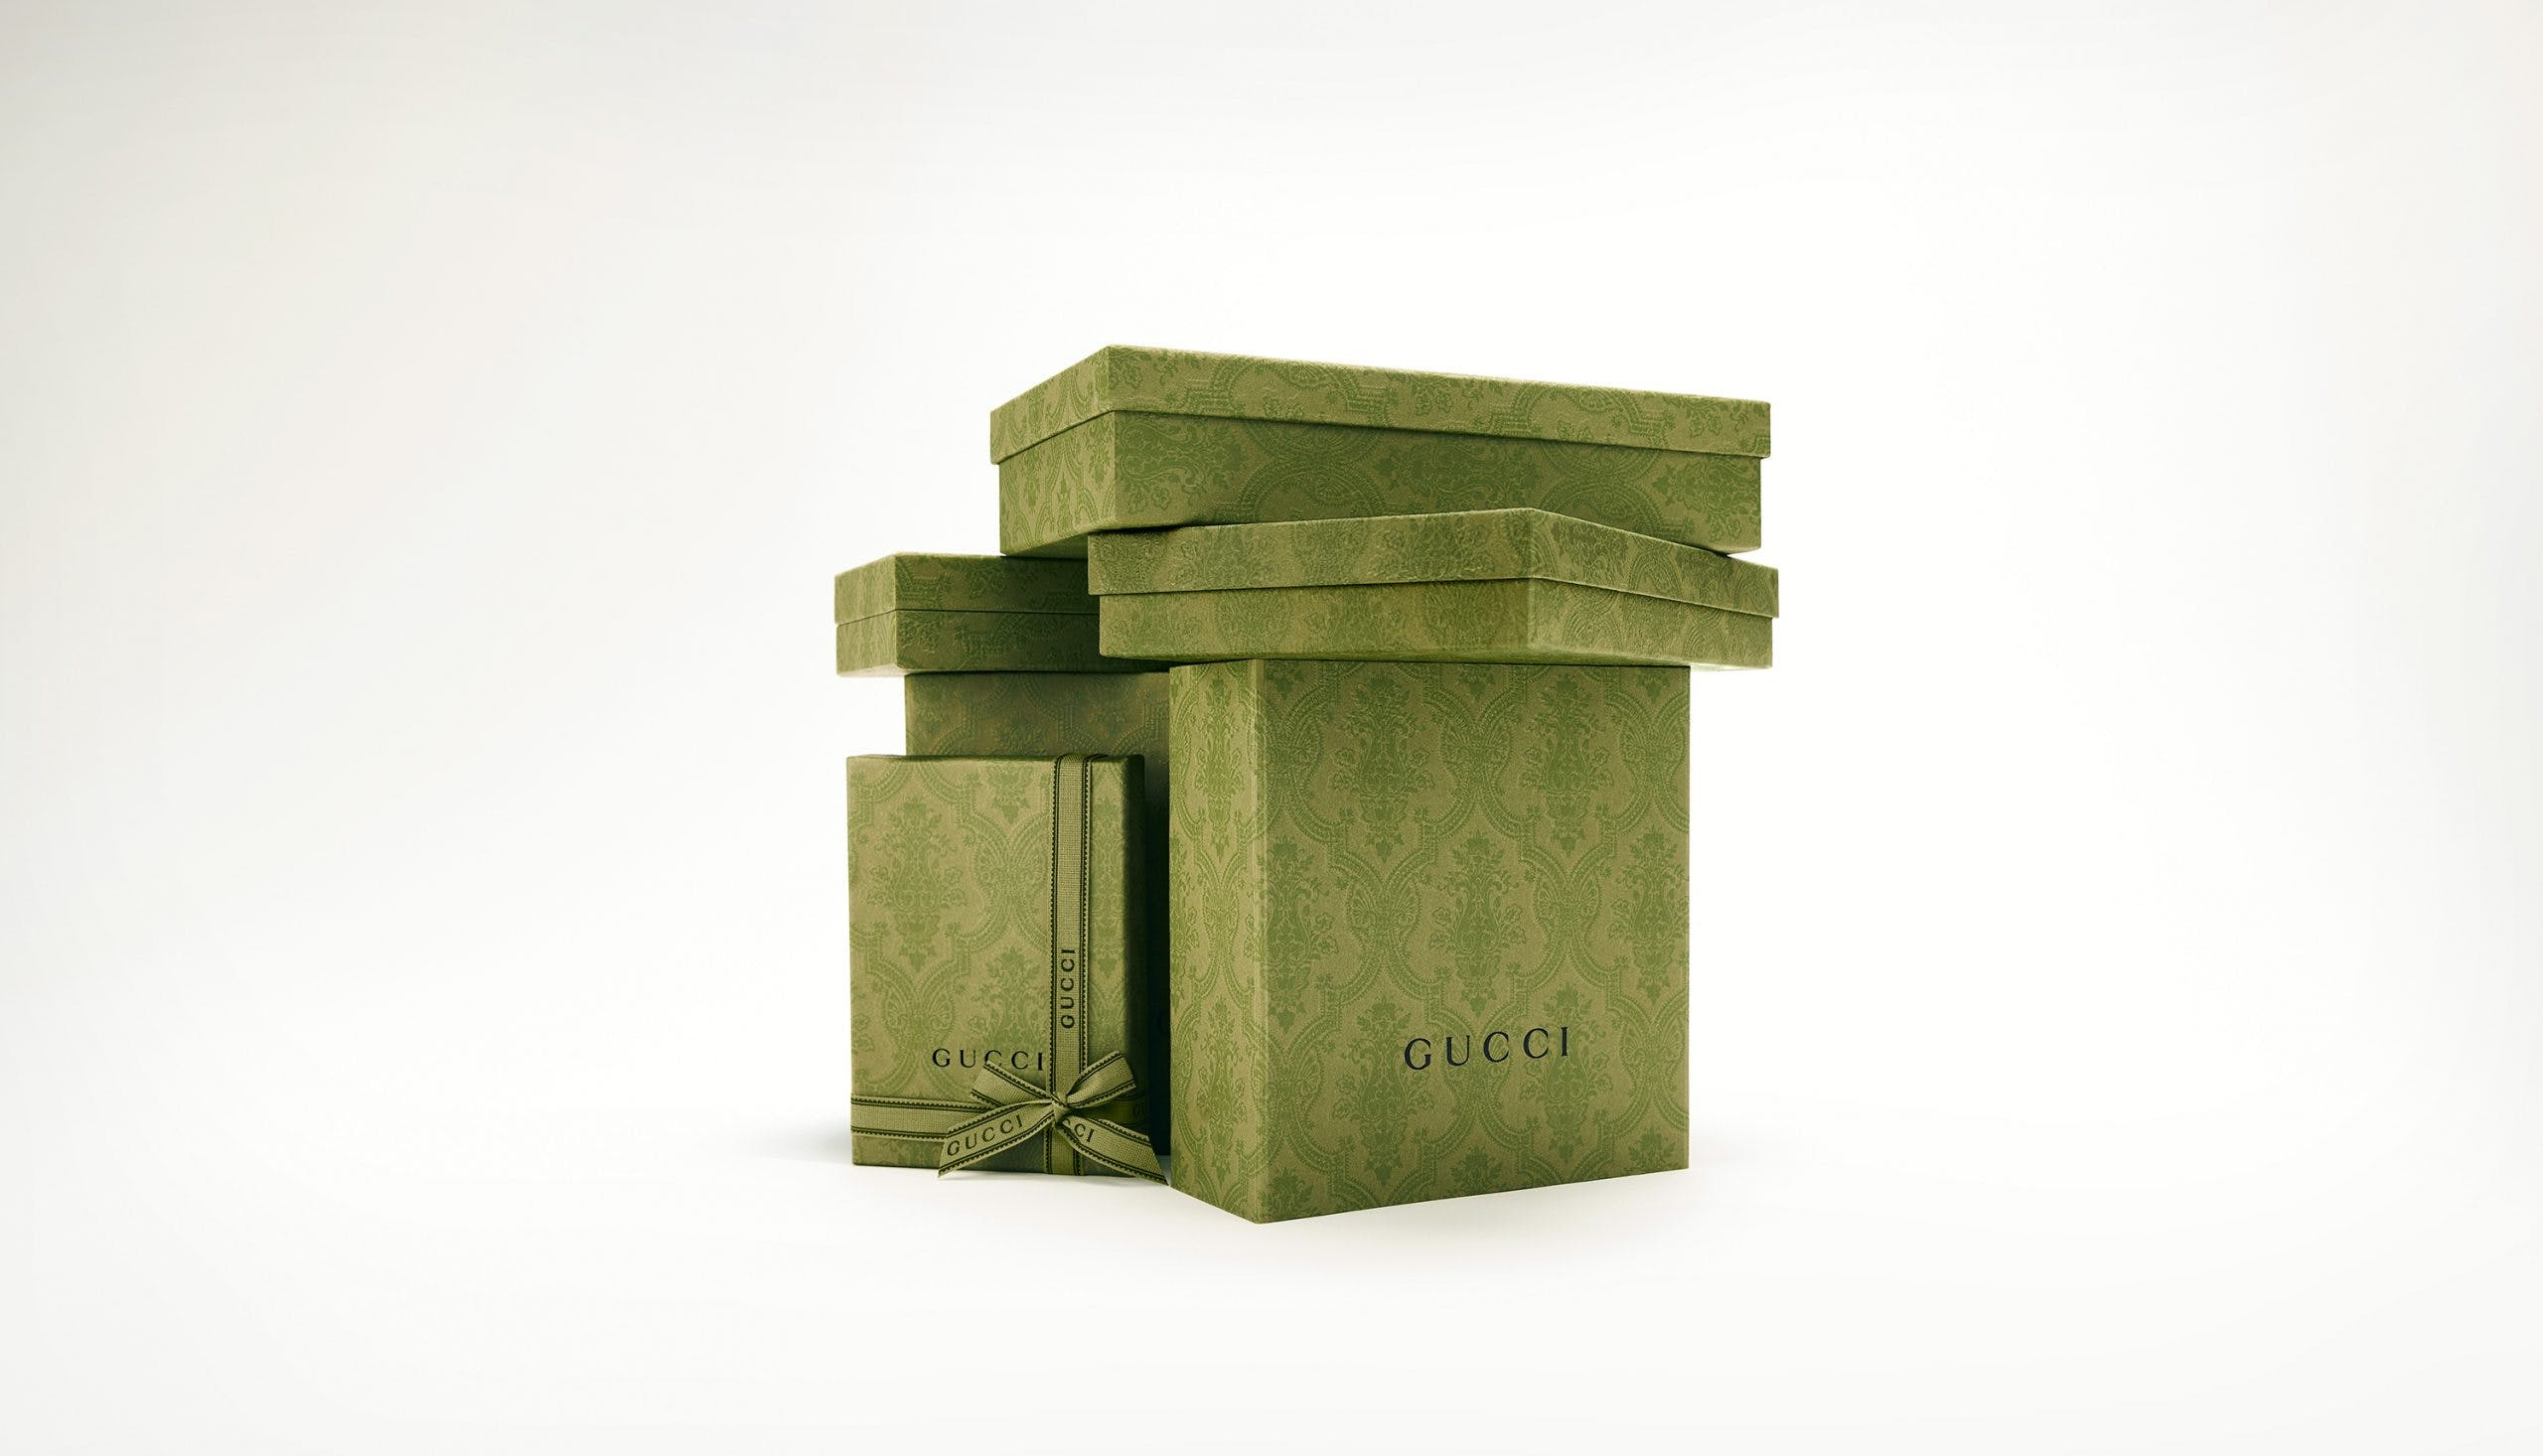 GUCCI LAUNCHES BIODEGRADABLE PACKAGING